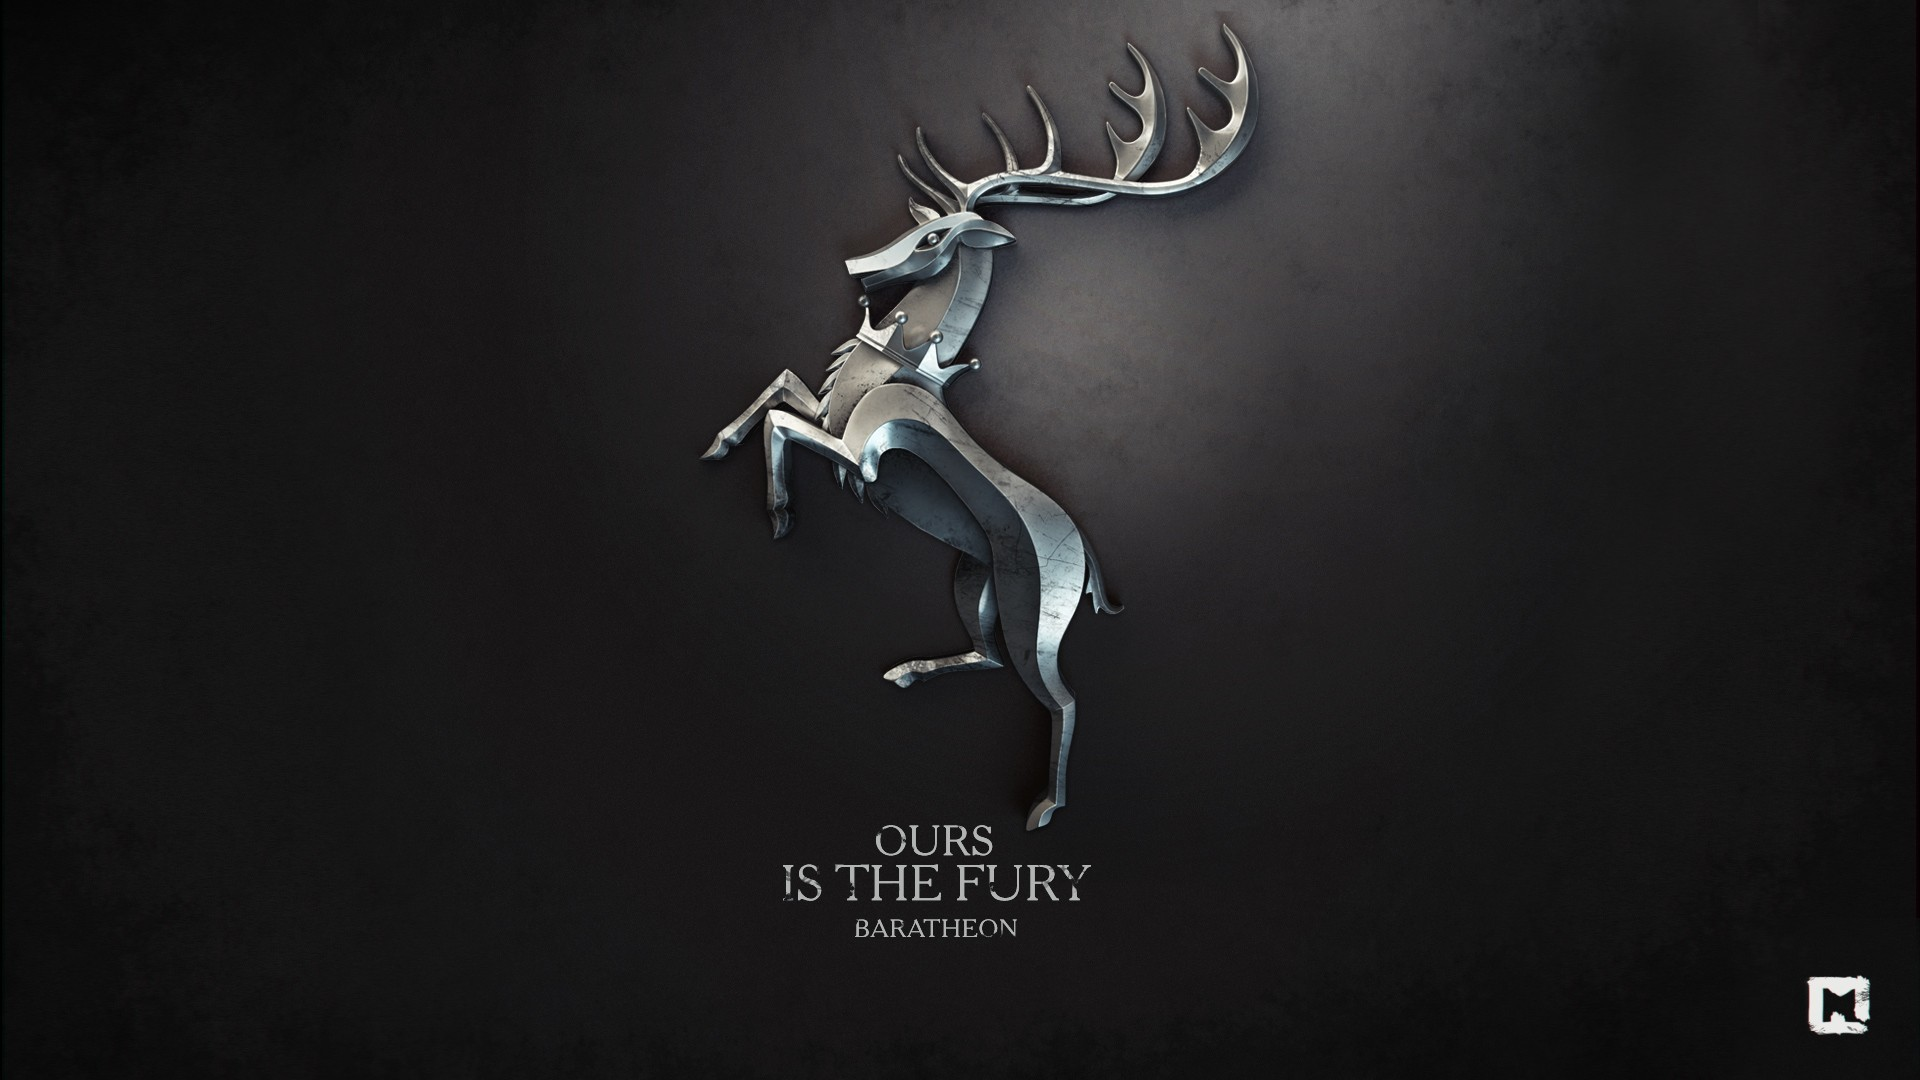 Res: 1920x1080, Horse Game of Thrones high definition desktop background wallpaper image  full free